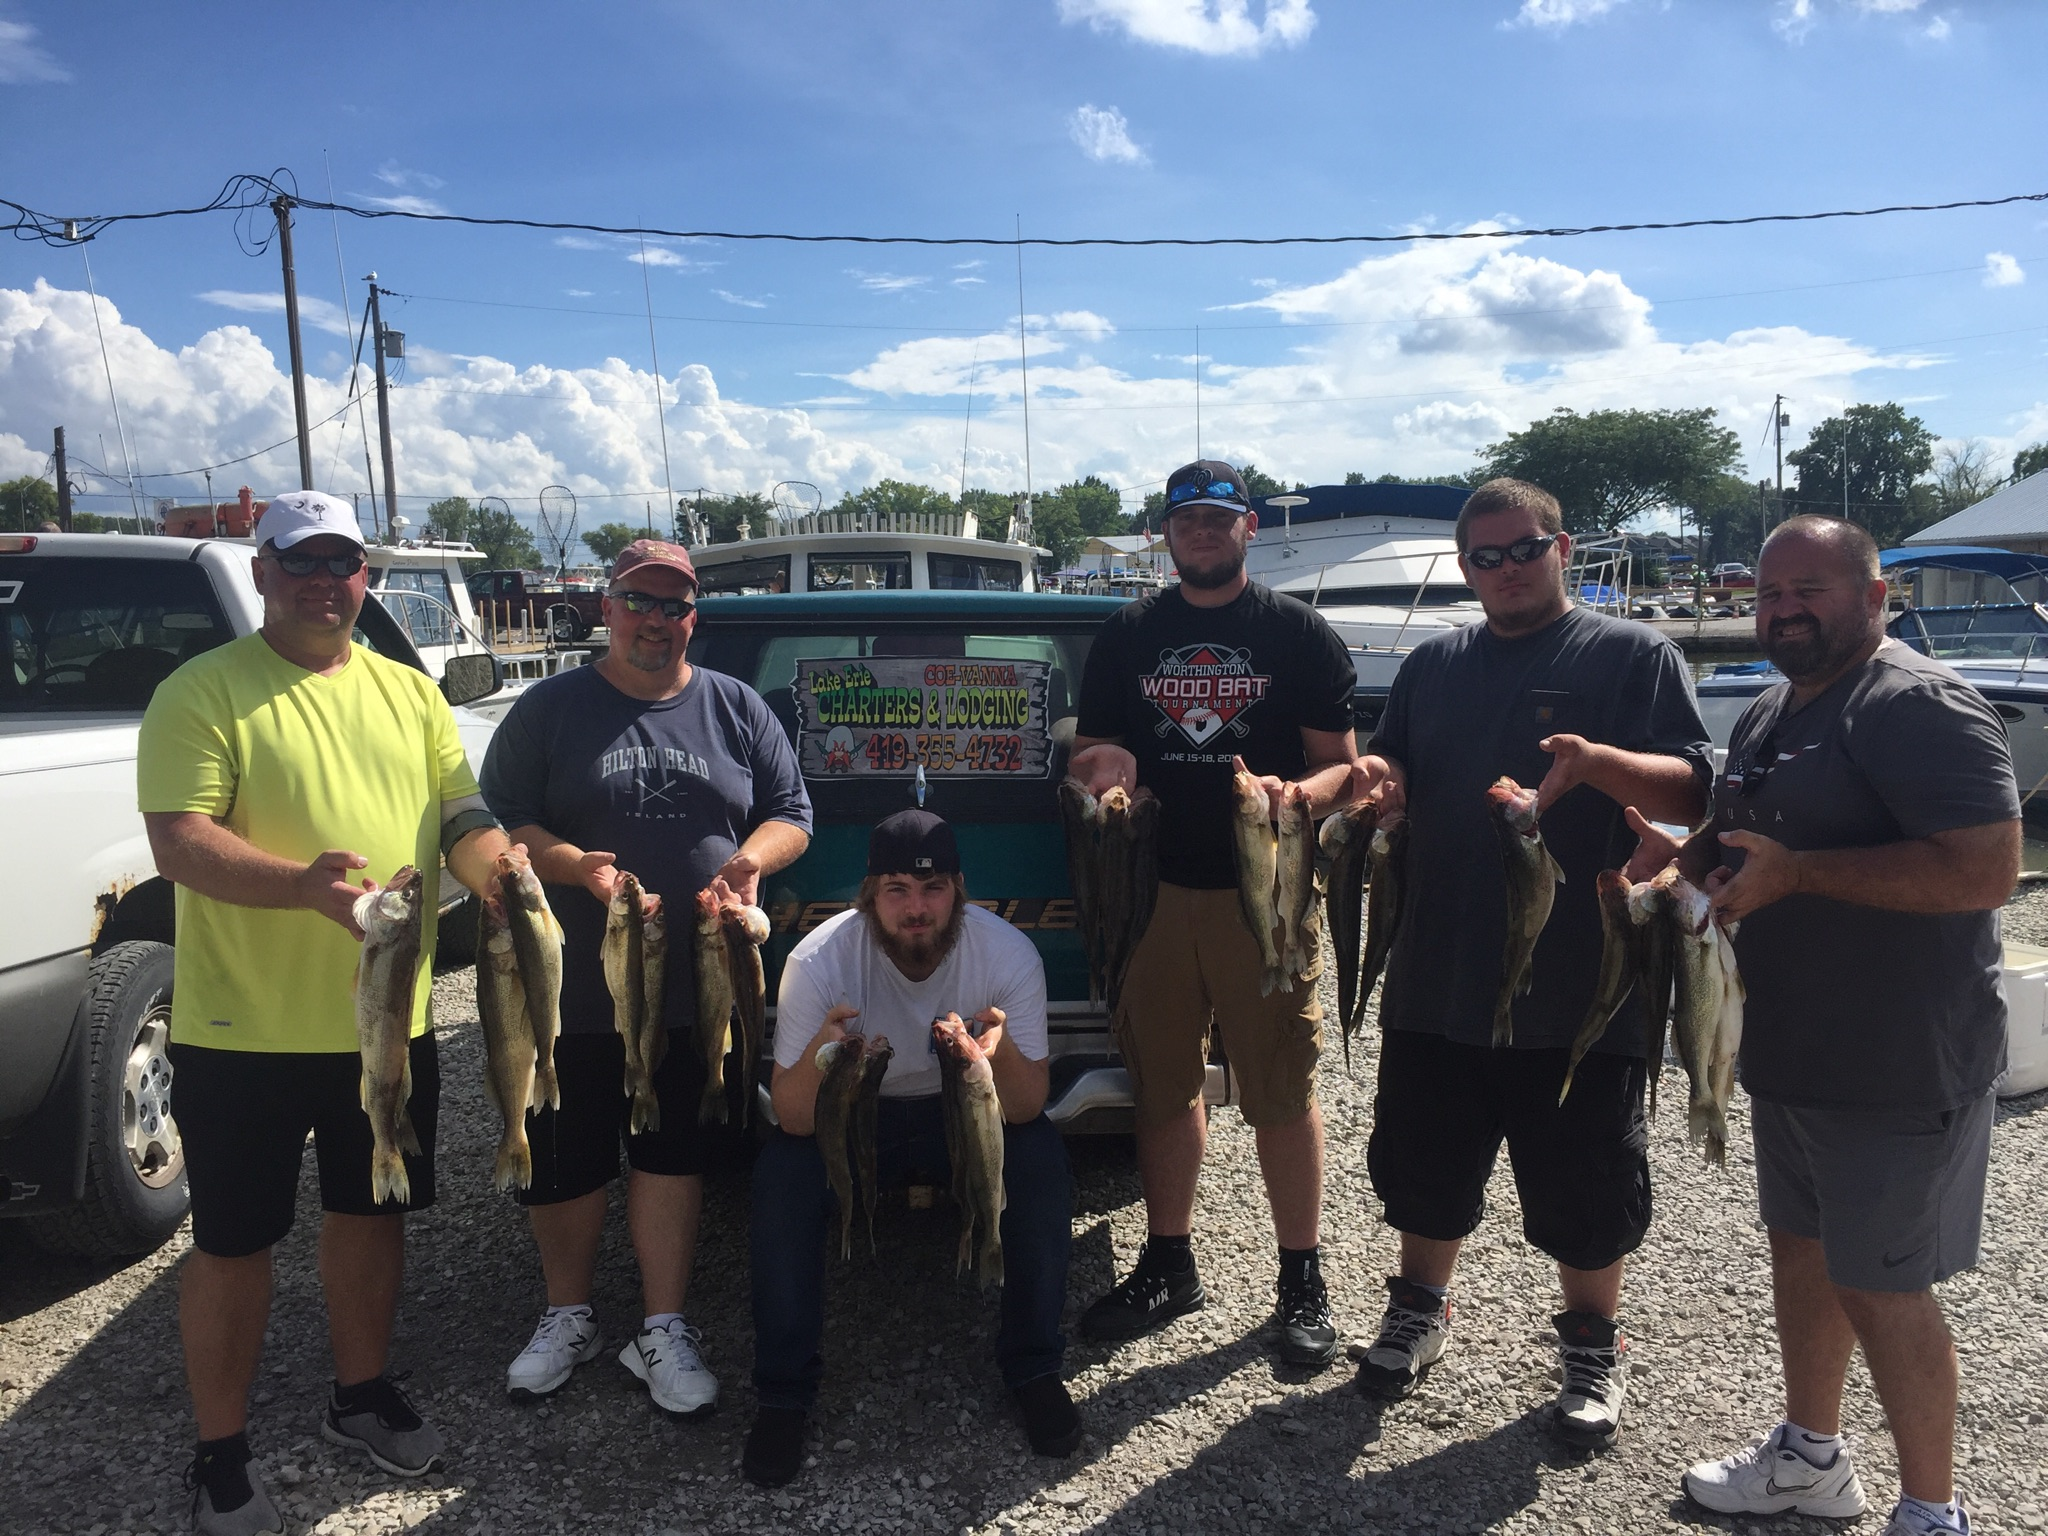 Walleye fishing charter boats on Lake Erie